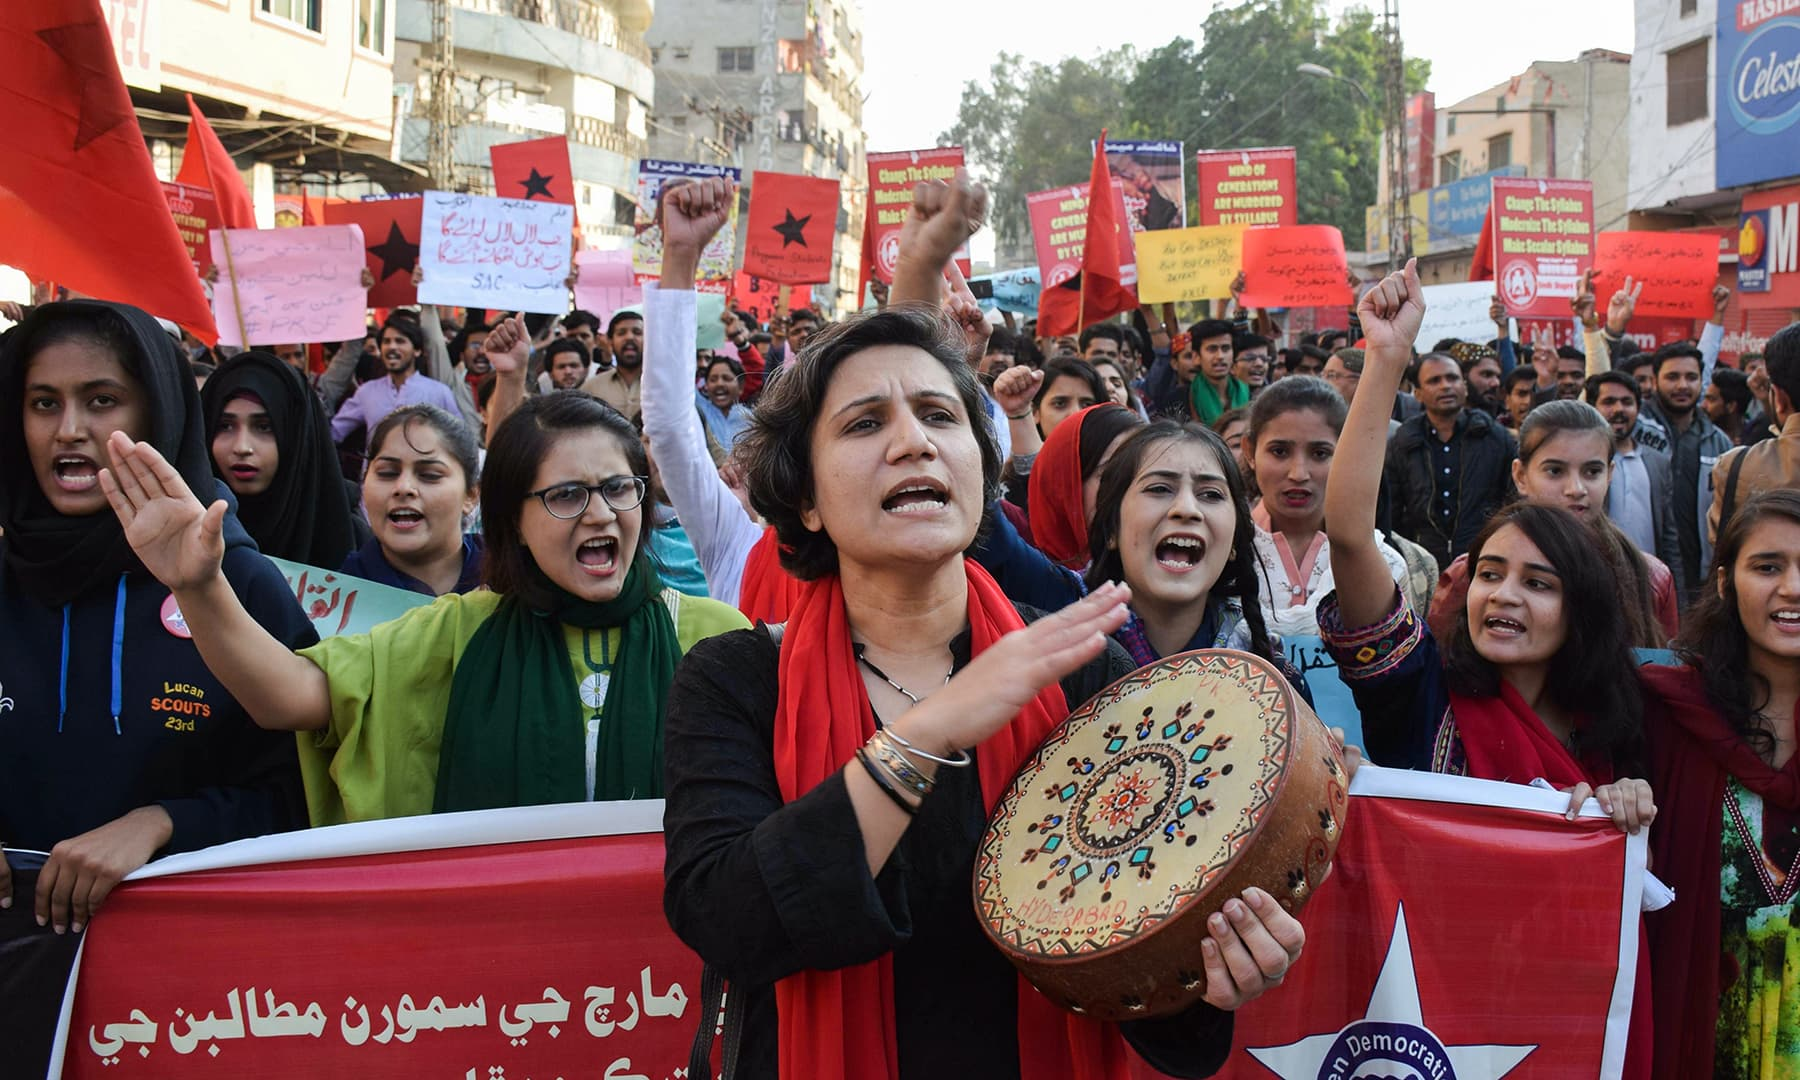 Students and activists chant slogans demanding the restoration of student unions during a student solidarity march in Hyderabad. — Reuters